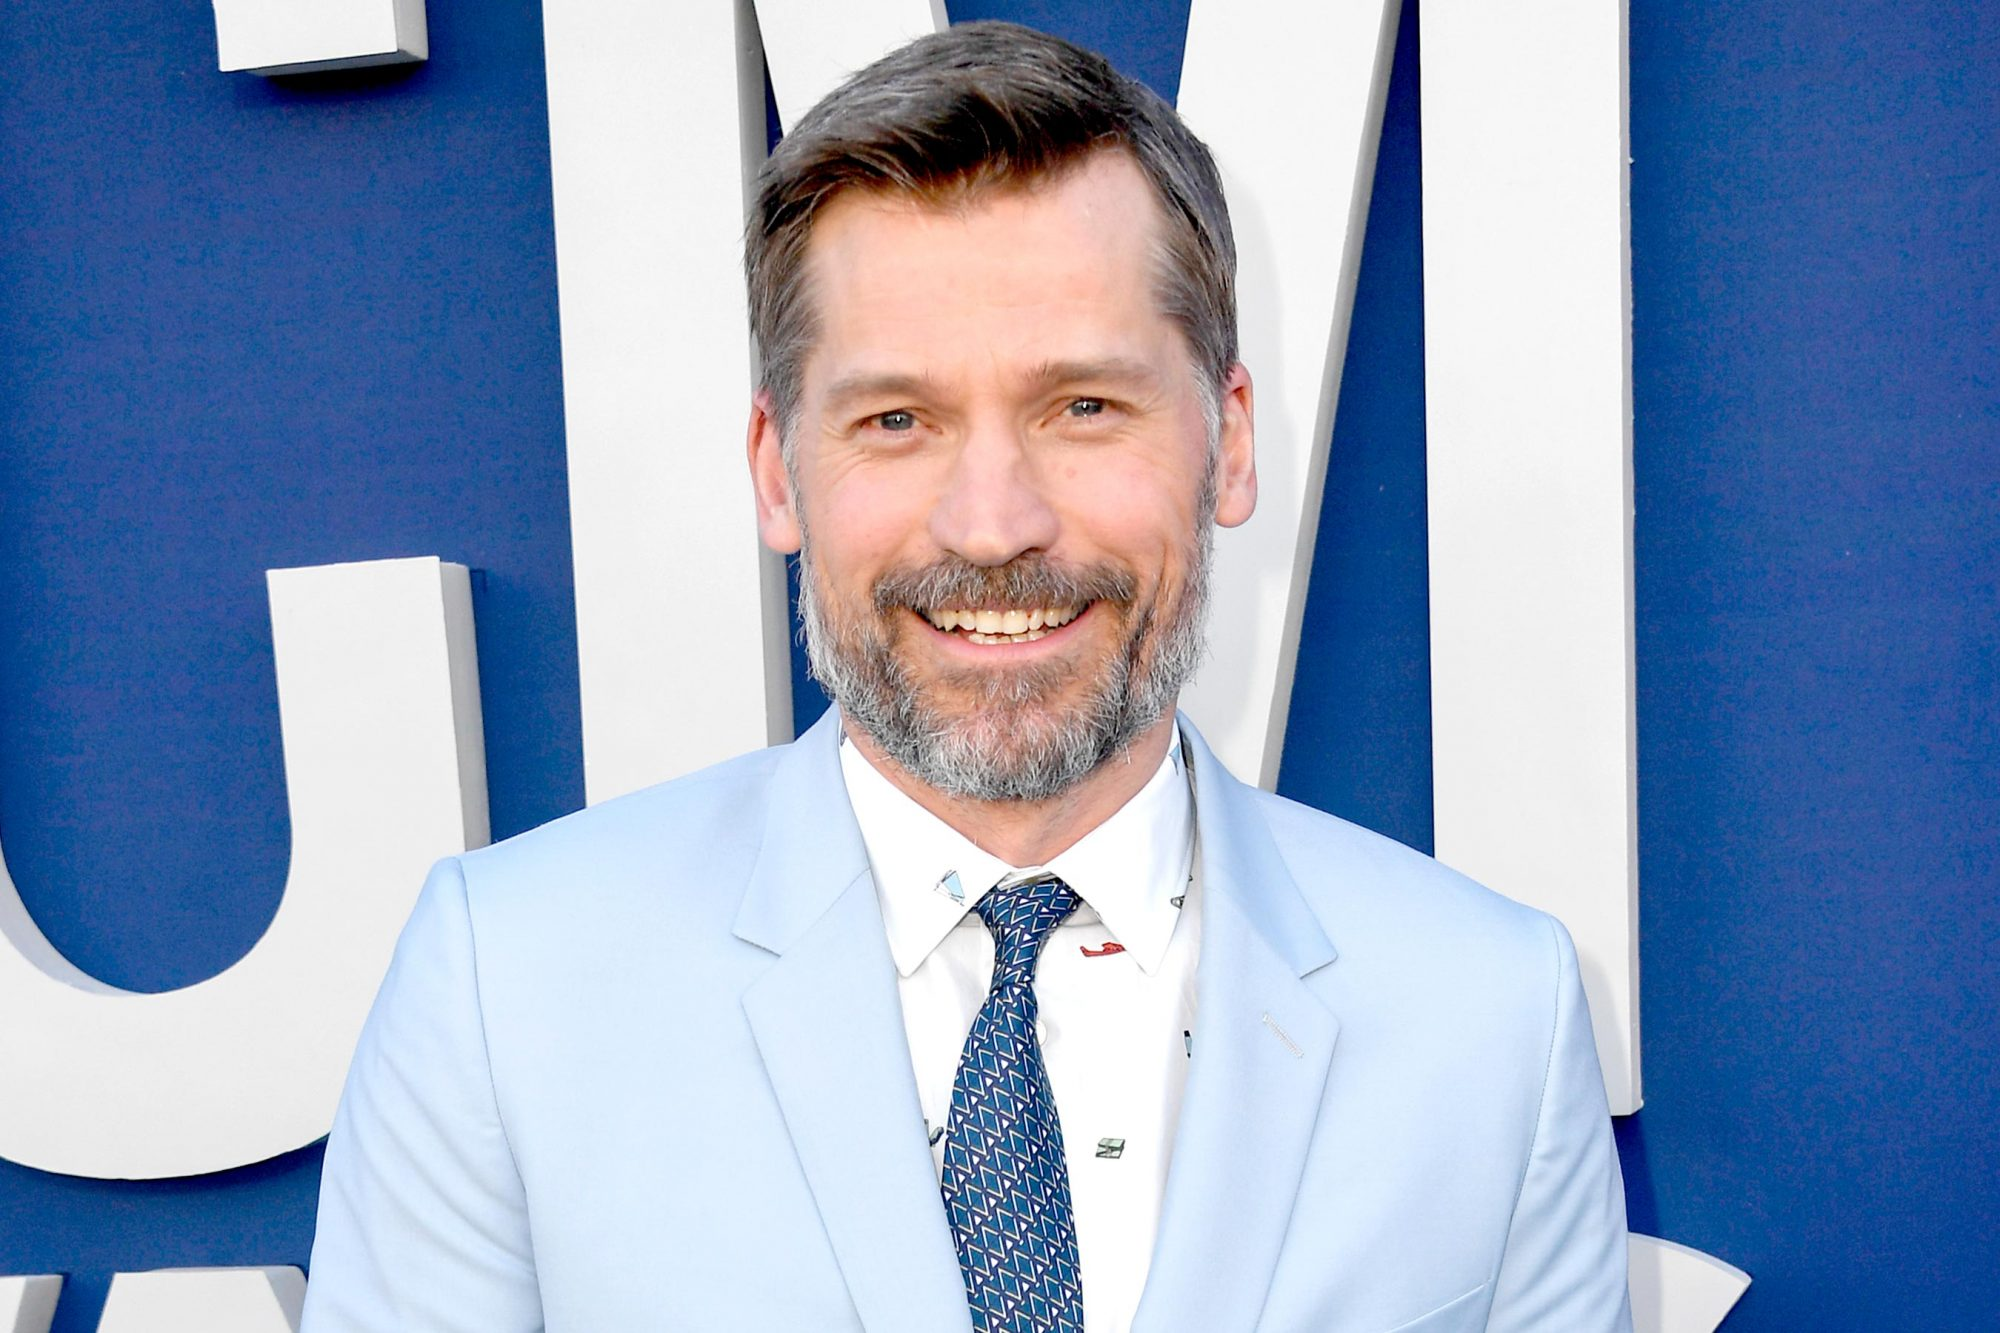 LAS VEGAS, NEVADA - APRIL 07: Nikolaj Coster-Waldau attends the 54th Academy Of Country Music Awards at MGM Grand Garden Arena on April 07, 2019 in Las Vegas, Nevada. (Photo by Frazer Harrison/ACMA2019/Getty Images for ACM)